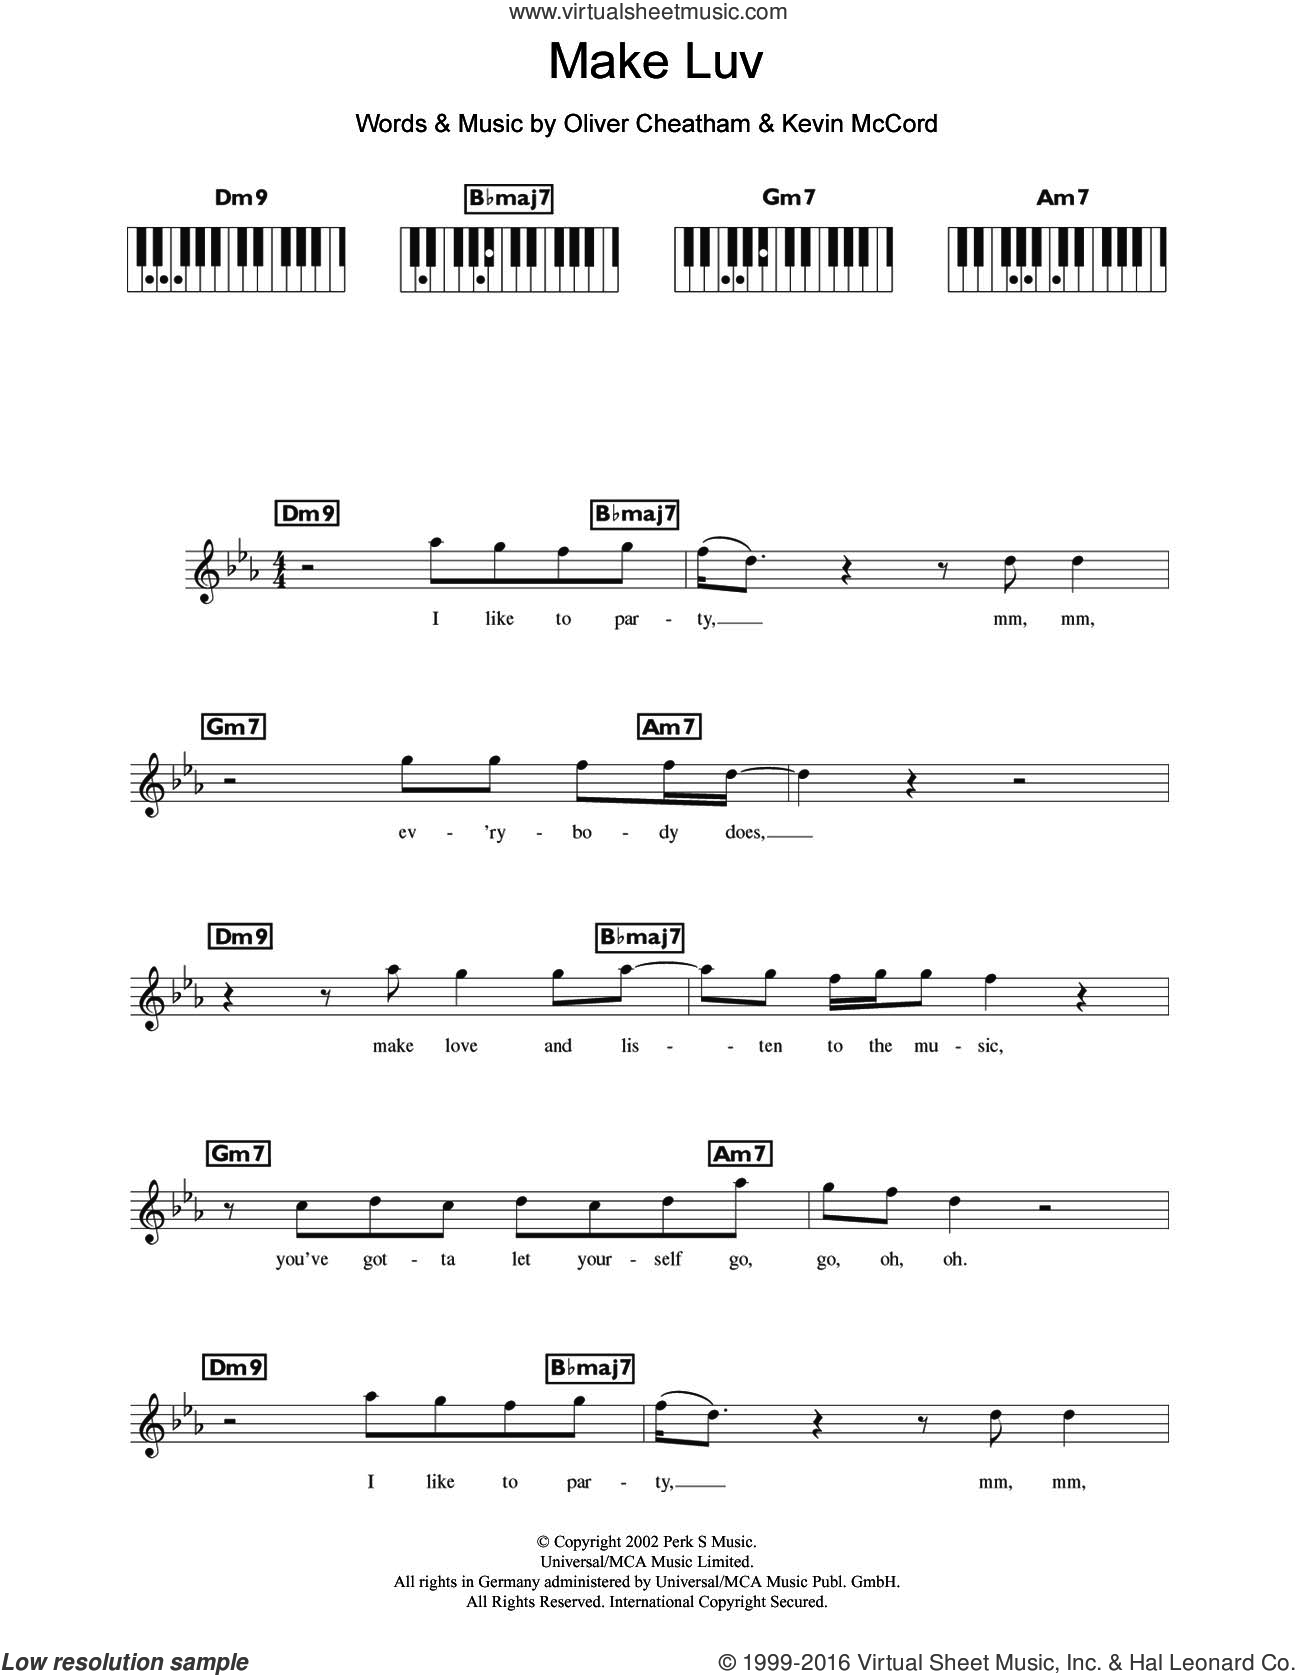 Make Luv (featuring Oliver Cheatham) sheet music for piano solo (chords, lyrics, melody) by Kevin McCord